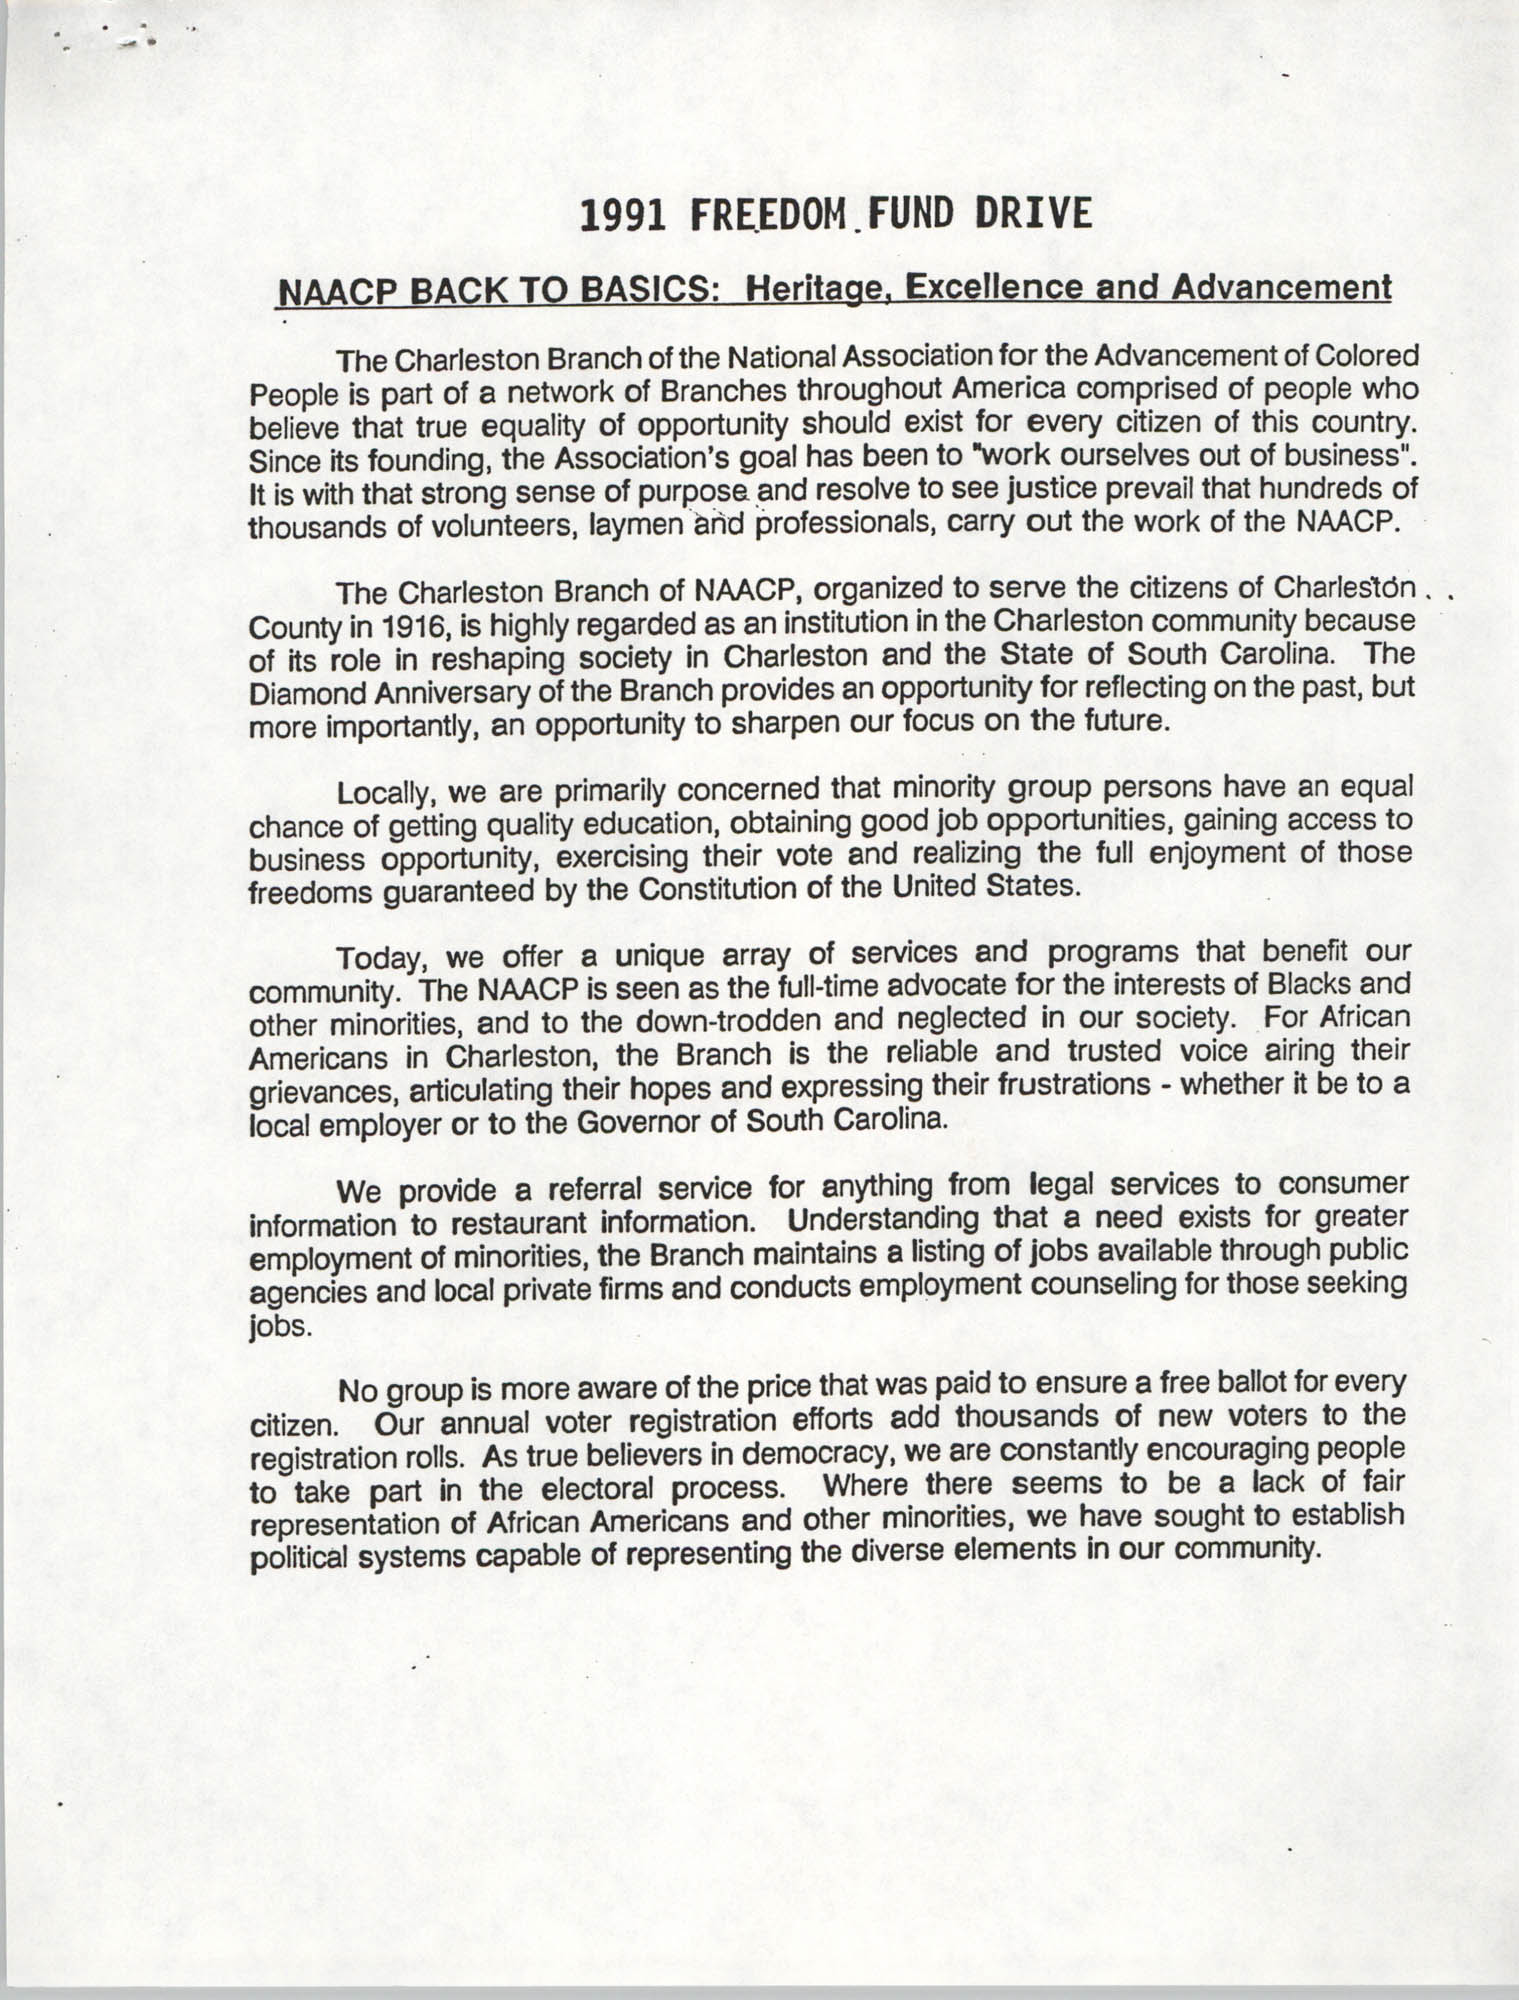 NAACP Back To Basics, 1991 Freedom Fund Drive